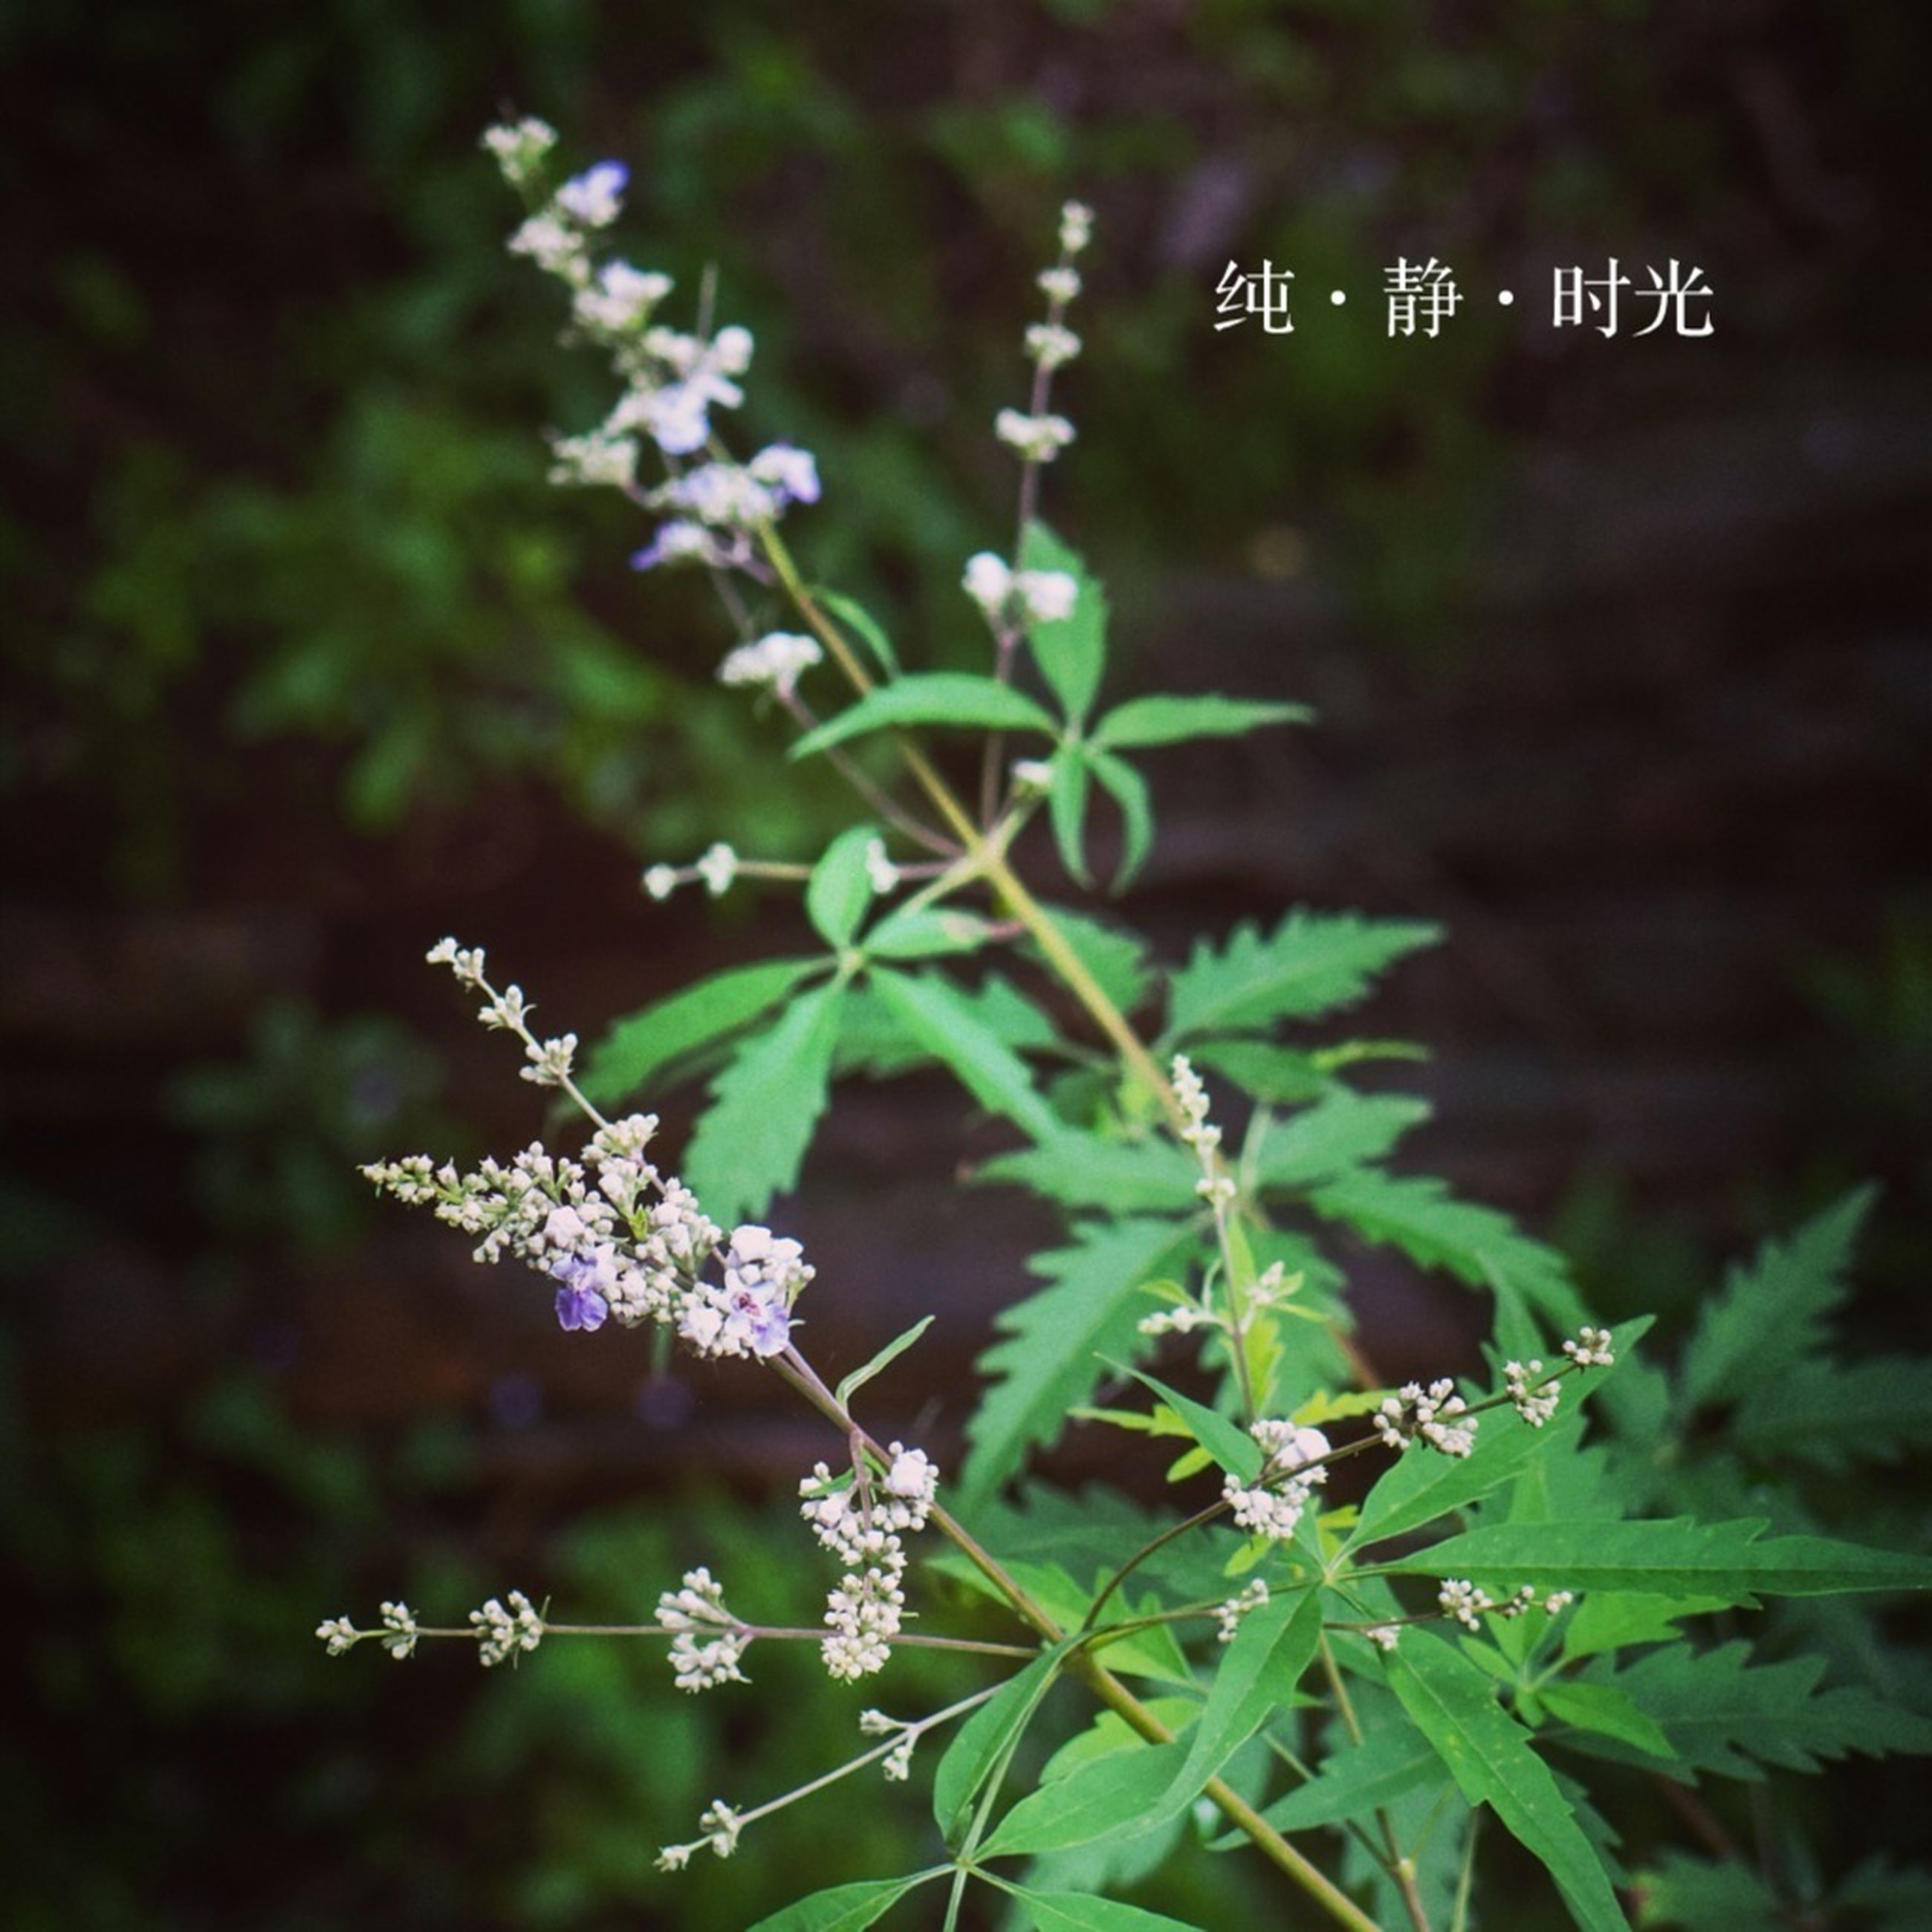 growth, plant, flower, focus on foreground, nature, green color, leaf, close-up, beauty in nature, freshness, outdoors, selective focus, day, no people, fragility, text, white color, growing, stem, green